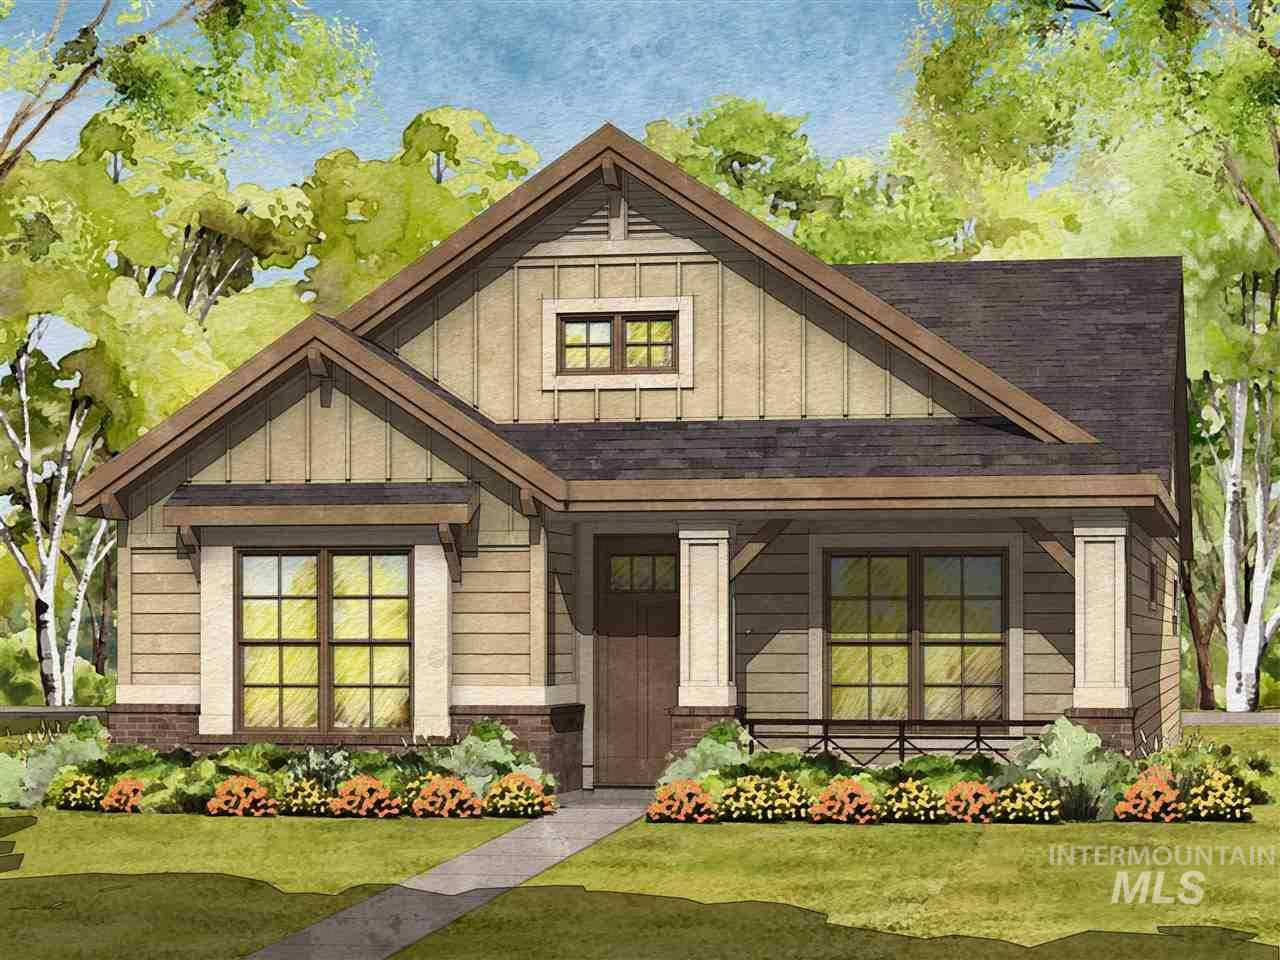 The Black Forest by Brighton Homes. This efficiently designed floor plan offers function and charm. The open concept makes this home perfect for entertaining. Relax in the beautiful master suite with a walk-in shower and large closet. The beautiful kitchen features custom cabinets, walk-in pantry, Bosch stainless steel appliances package and Kohler throughout–a Brighton standard! This home is 100% Energy Star Certified. Interior specs shown are subject to change prior to completion date.